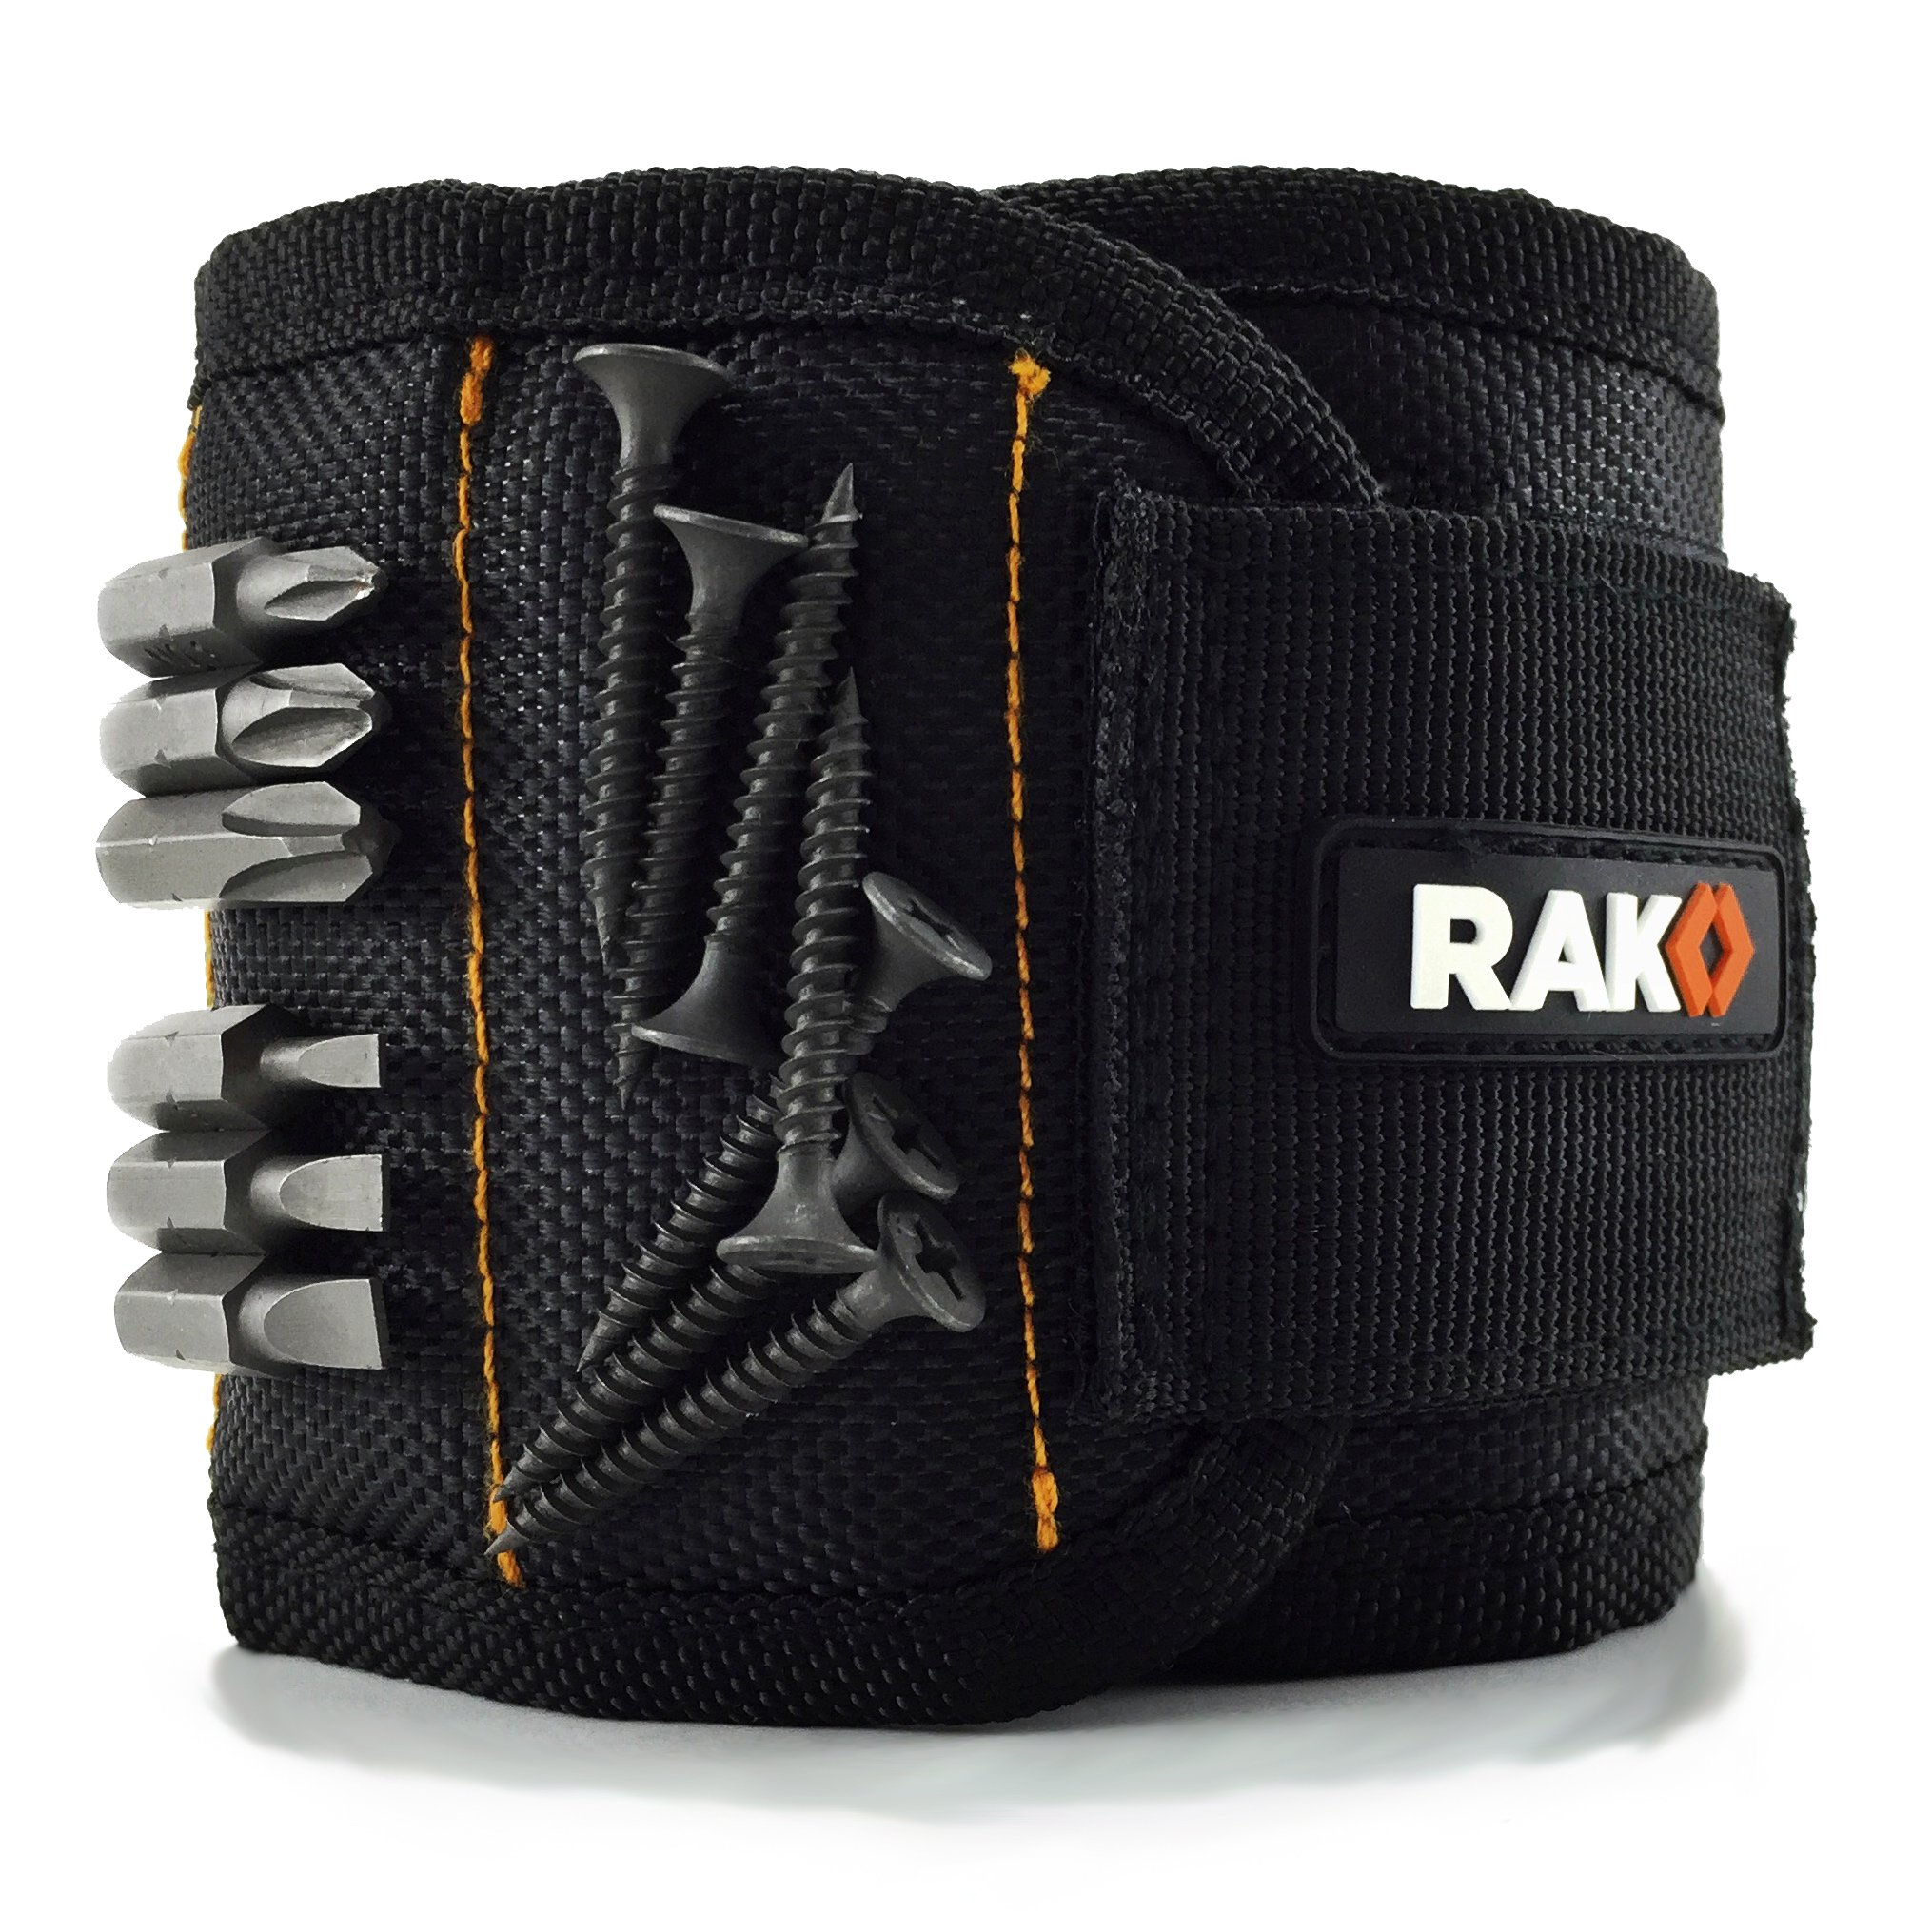 RAK Magnetic Wristband with Strong Magnets for Holding Screws, Nails, Drill Bits - Best Unique Tool Gift for Men, DIY Handyman, Father/Dad, Husband, Boyfriend, Him, Women (Black) by RAK